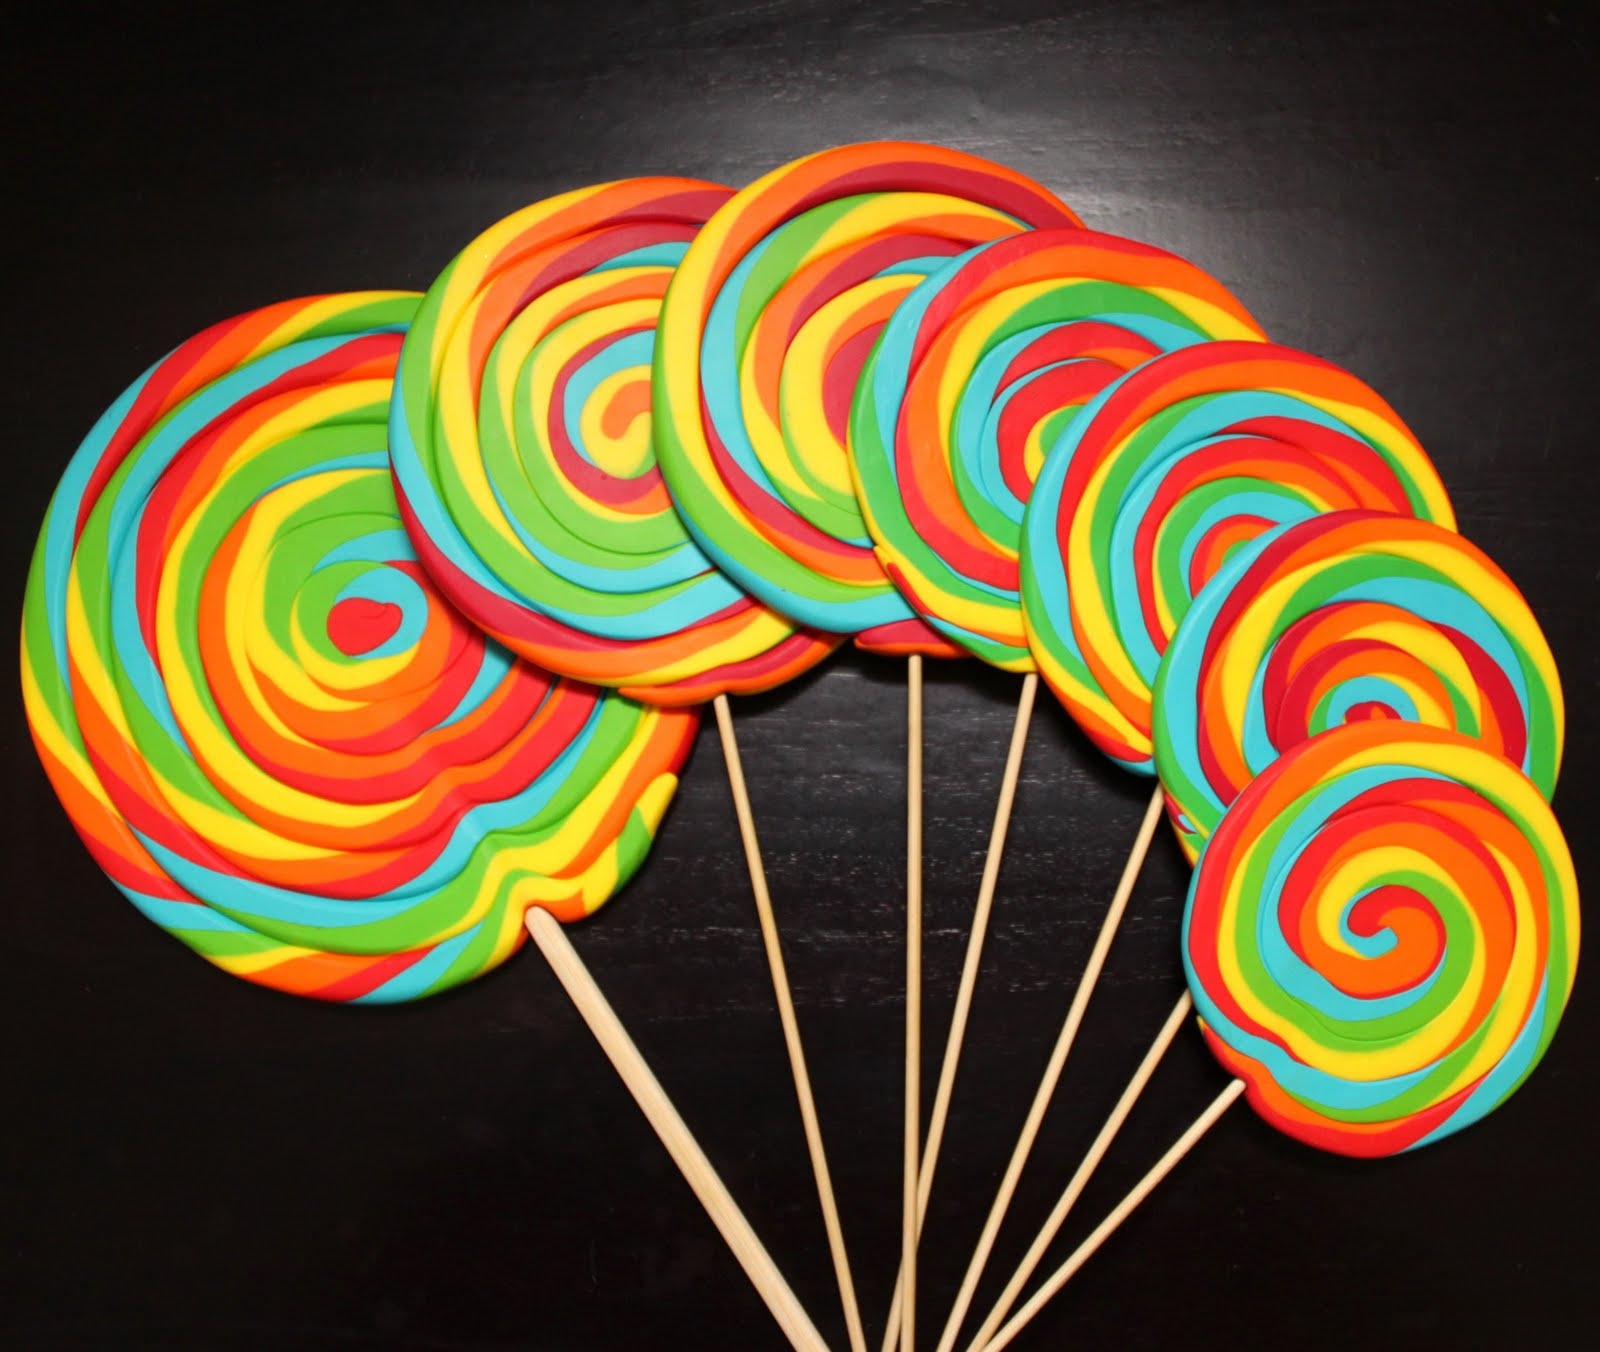 Candy Lollipop And Jelly Machinery Mail: Dwen : The Cool Things I Love: FIMO Lollipops & Candy